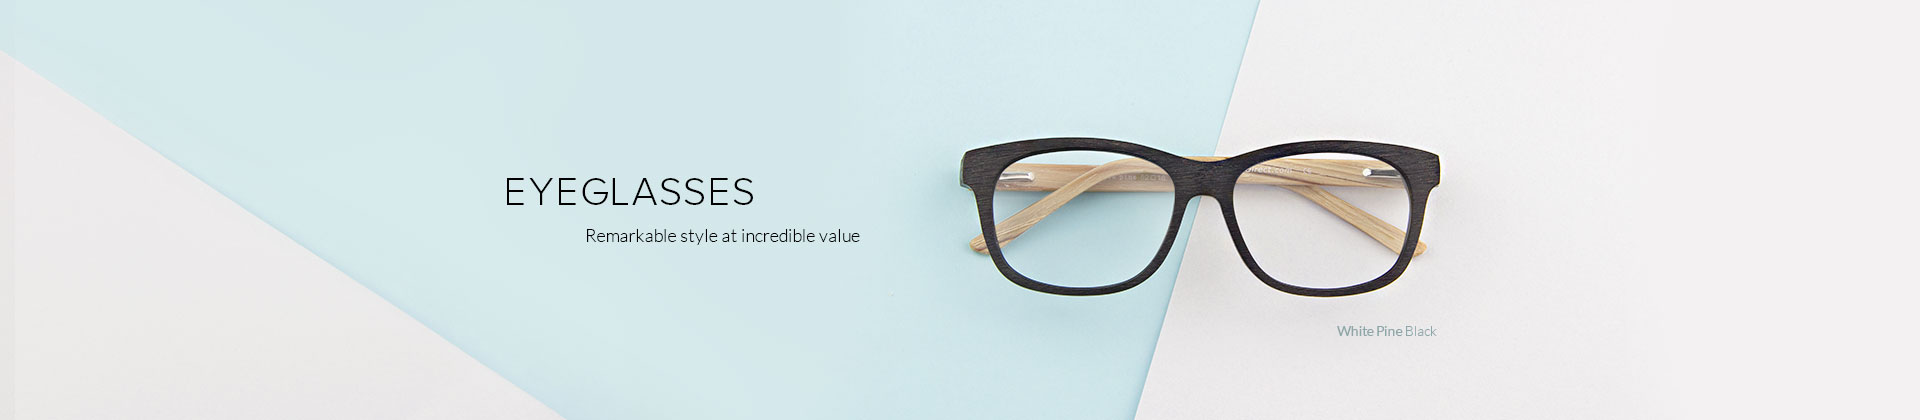 Eyeglasses - Perfect style,unbeatable value.